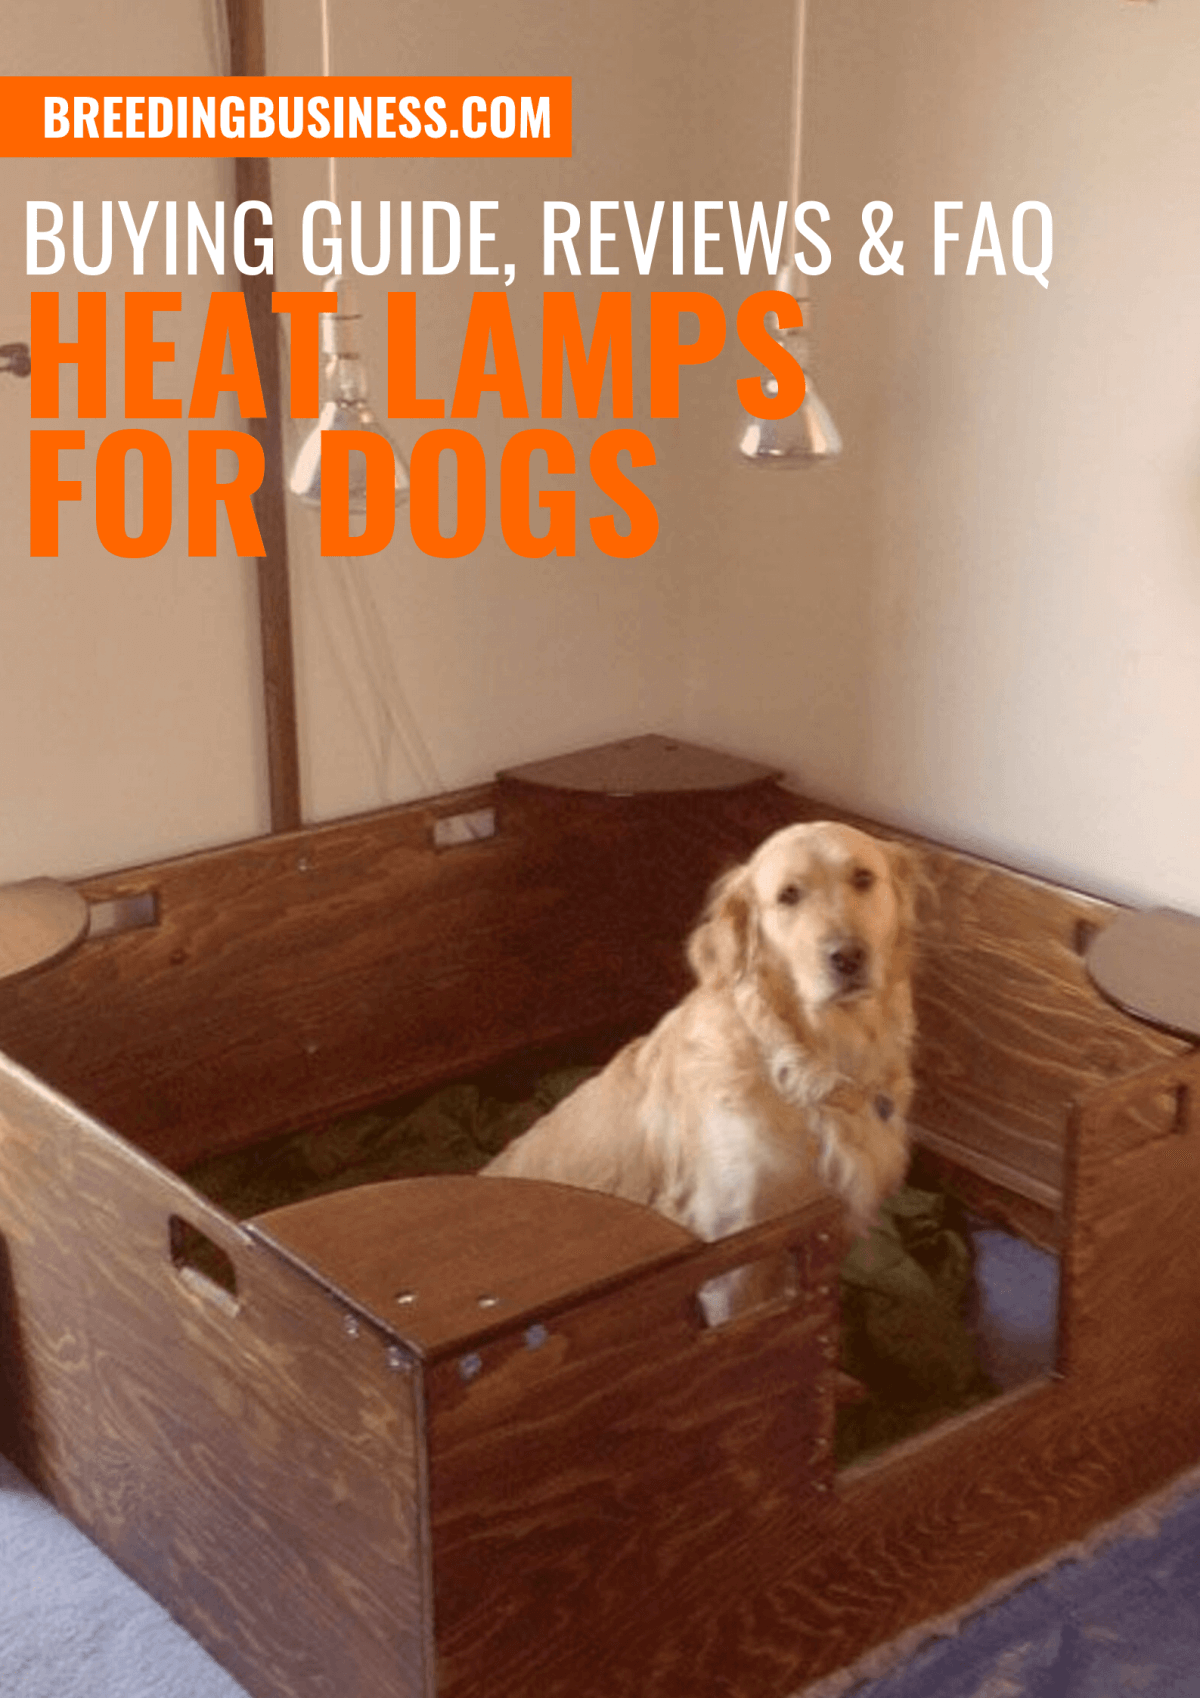 Heat Lamps for Dogs – Buying Guide, Reviews, FAQ